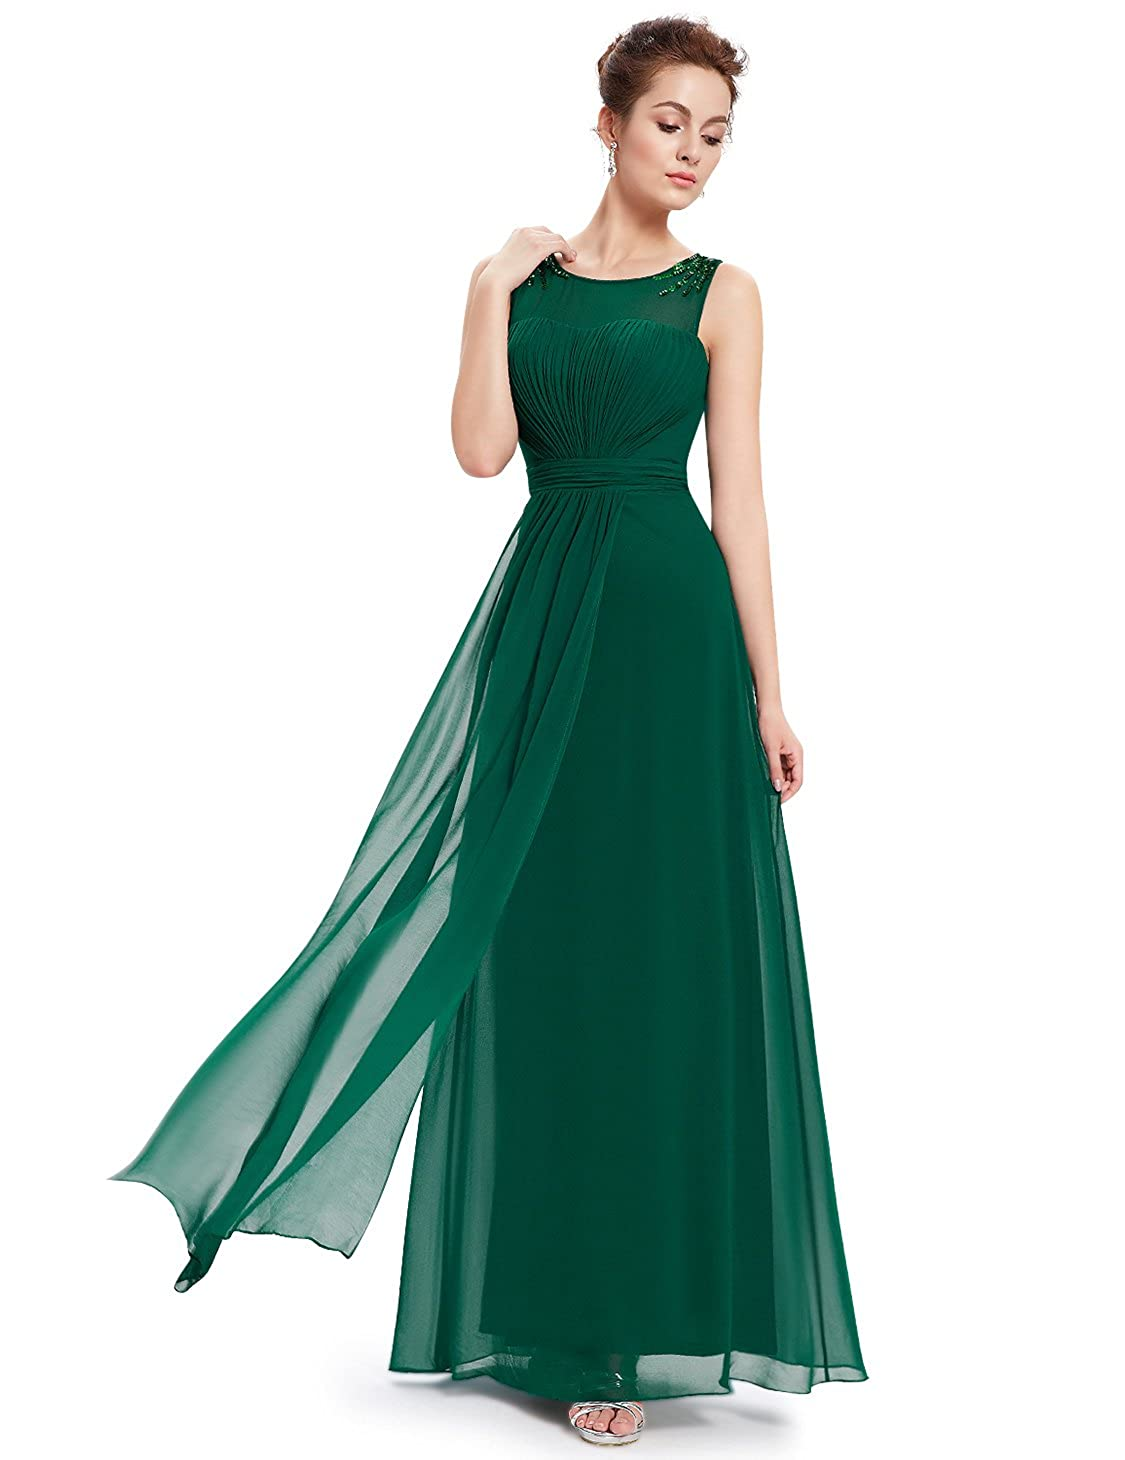 Ever-Pretty Womens Round Neck Ruffled Dimante Long Evening Dress 18UK Green: Amazon.co.uk: Clothing